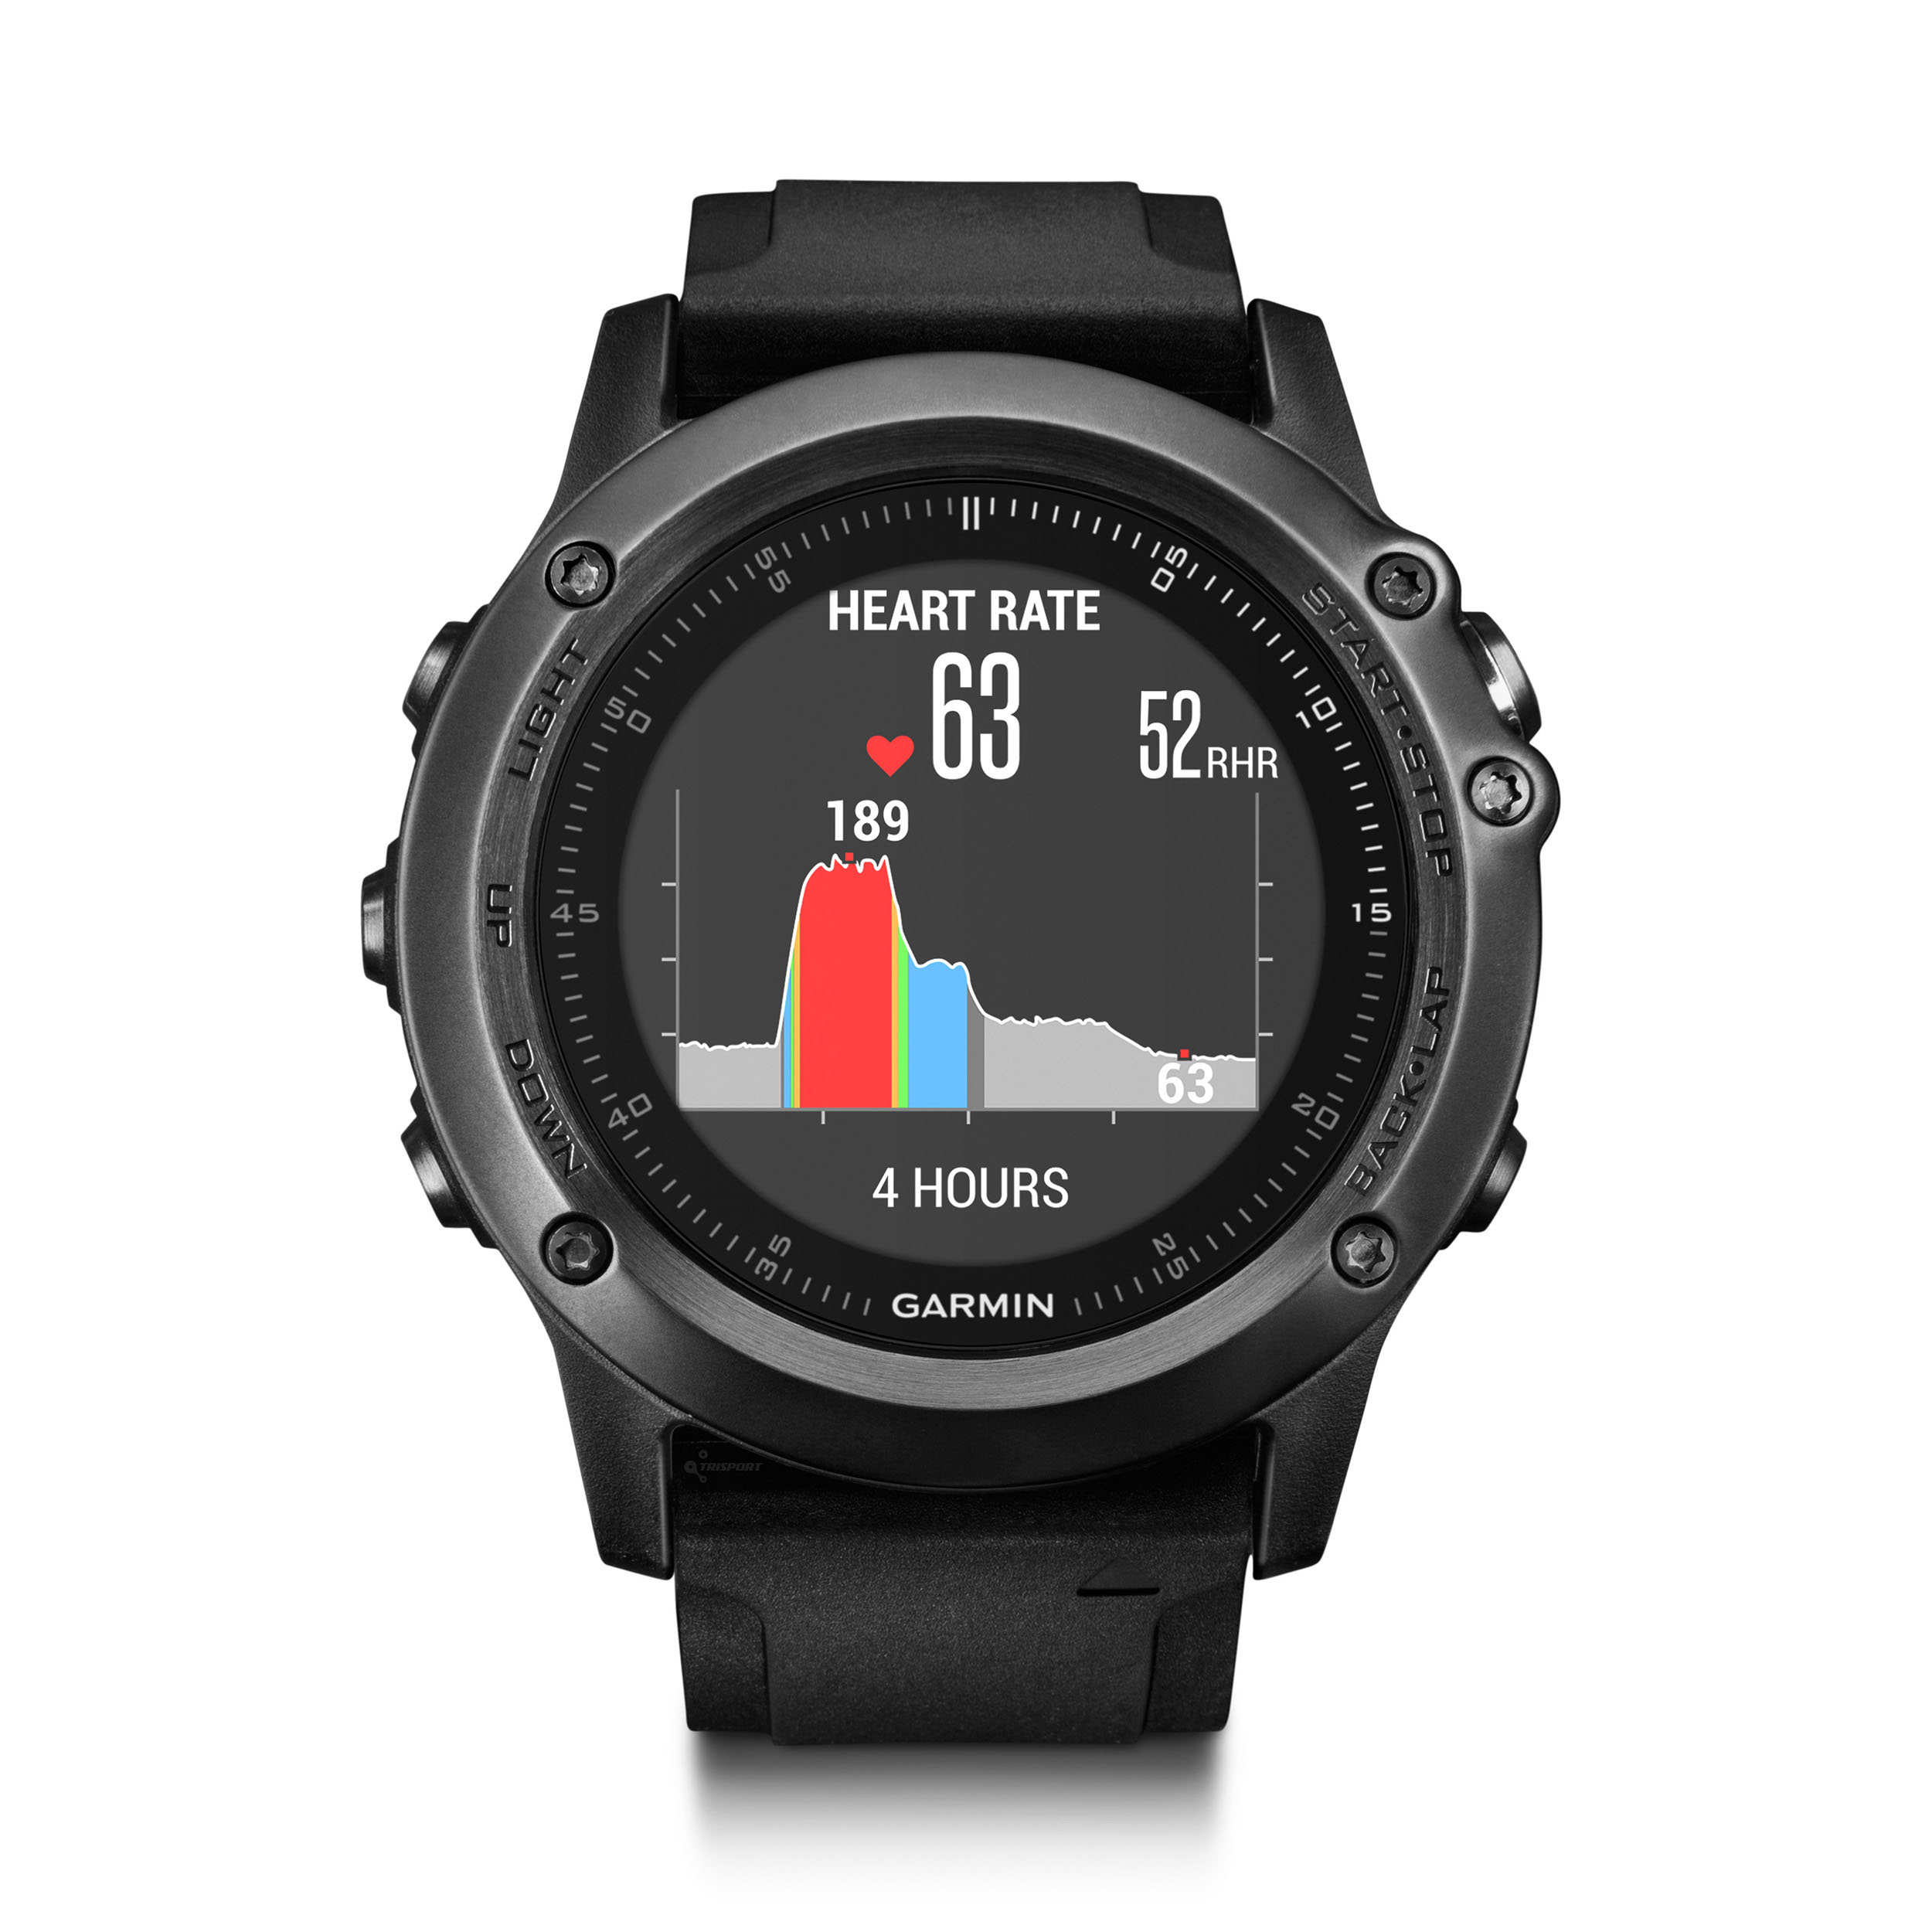 ro sapphire watches hr orca watch fenix trisport garmin